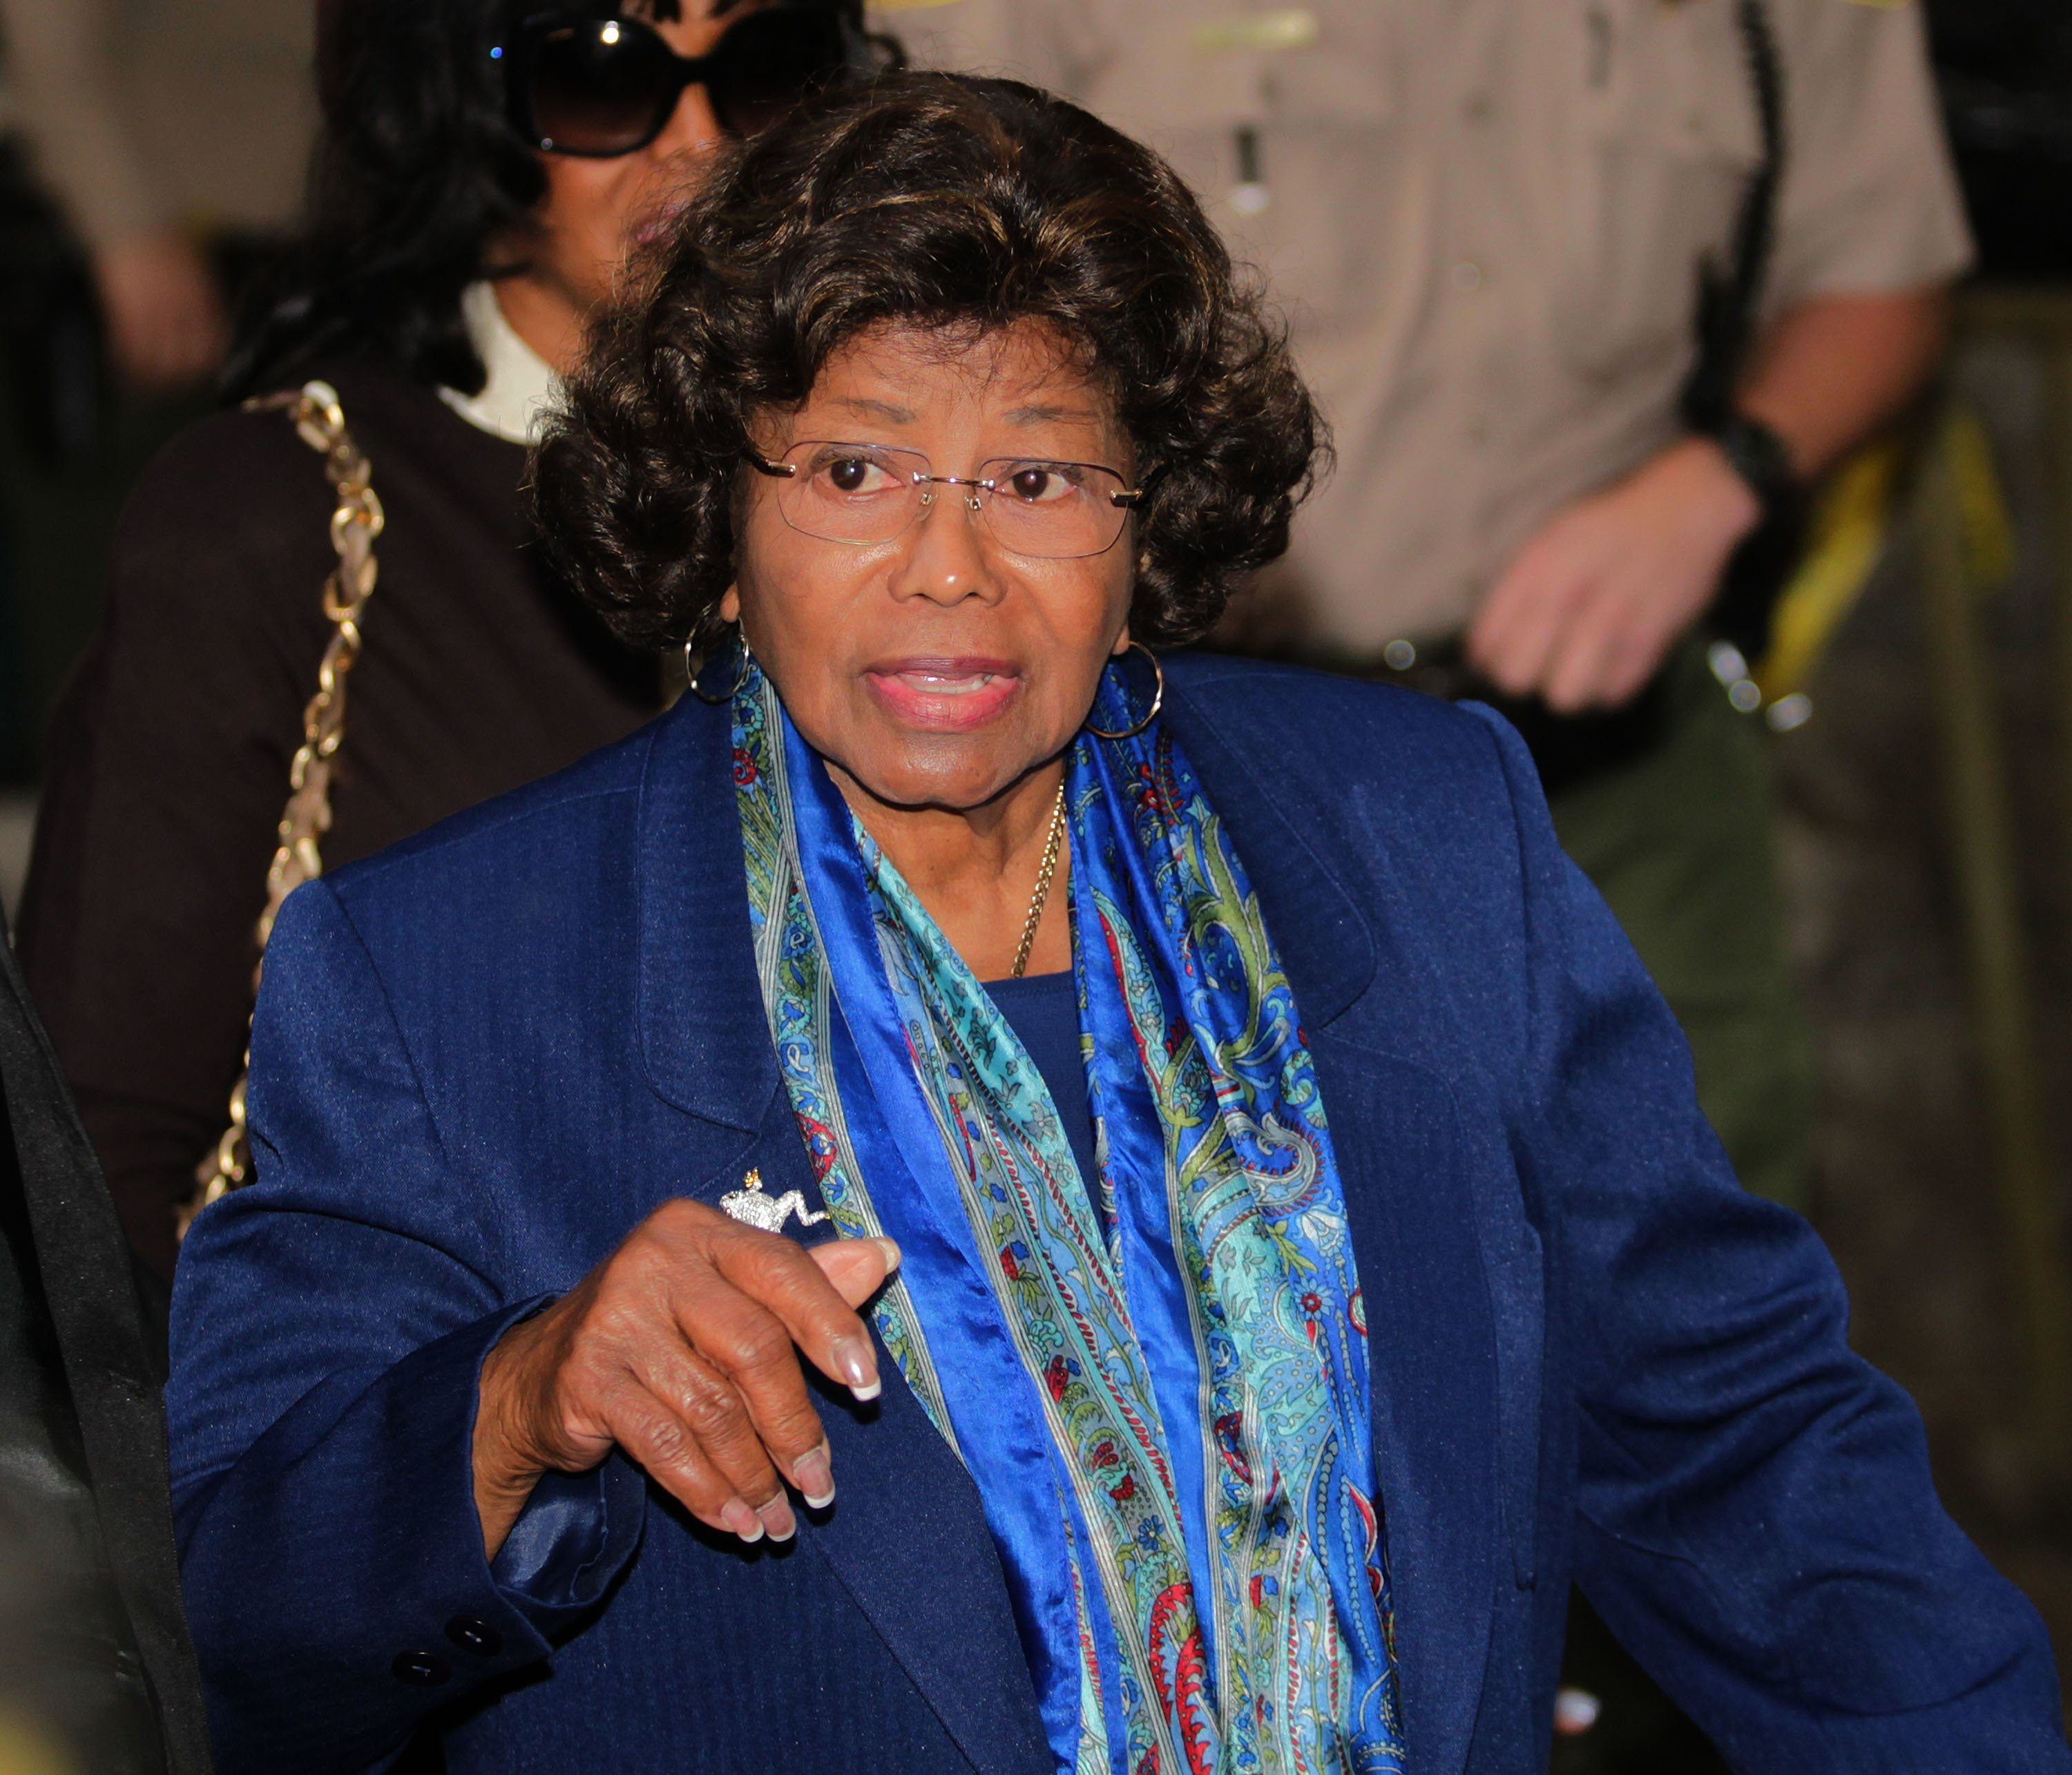 Katherine Jackson at the Los Angeles County courthouse for the arraignment of Dr. Conrad Murray on January 25, 2011 | Source: Getty Images